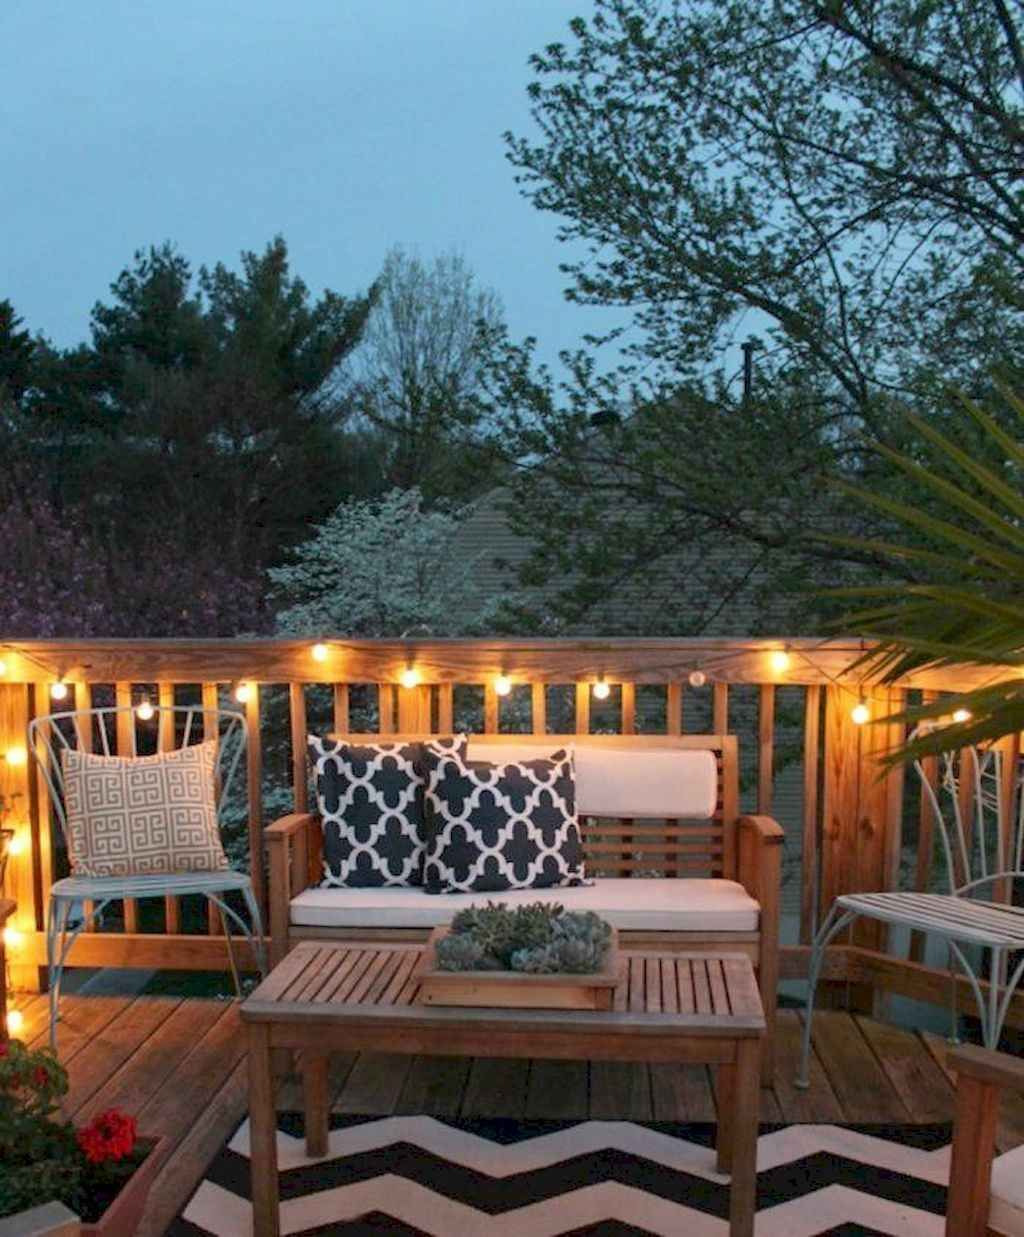 Backyard Deck Decorating Ideas Small Deck Ideas On A Budget